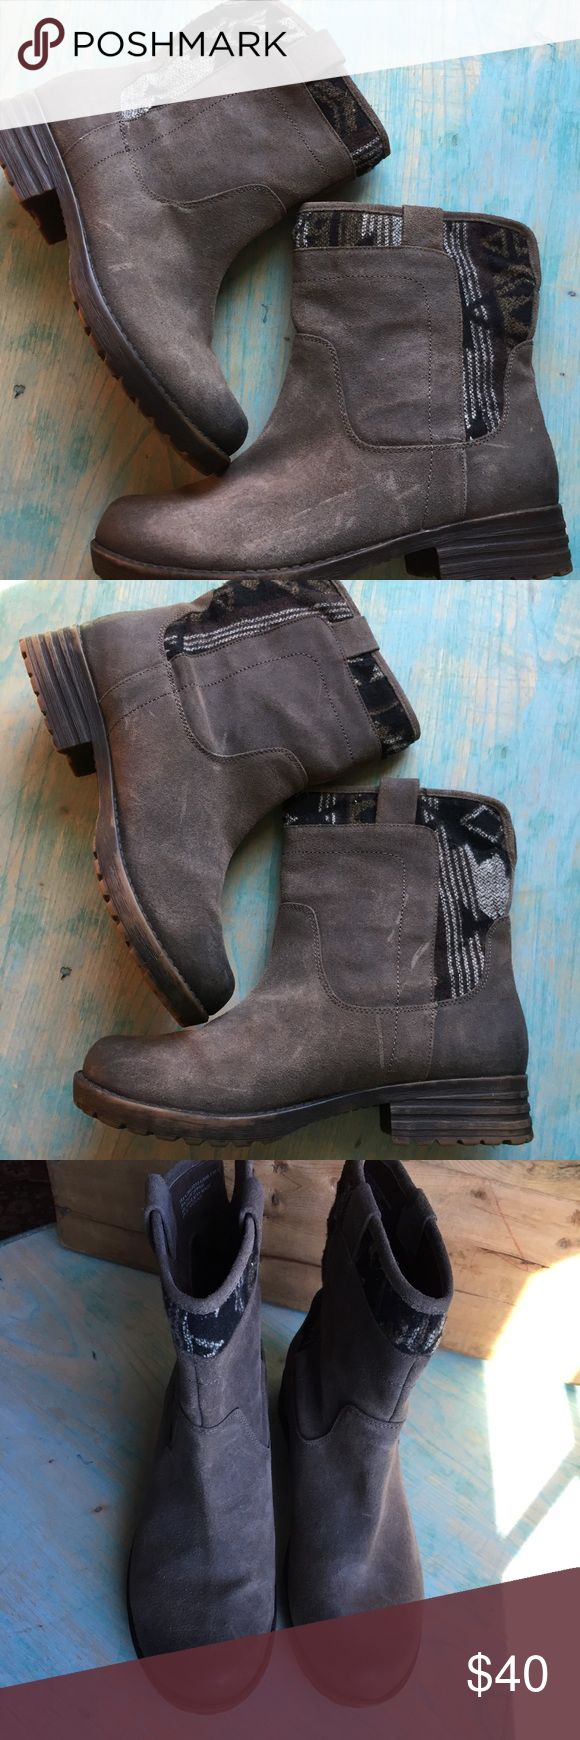 Tara M gray leather Taya ankle boots 8.5 Excellent preowned condition Tara M Shoes Ankle Boots & Booties